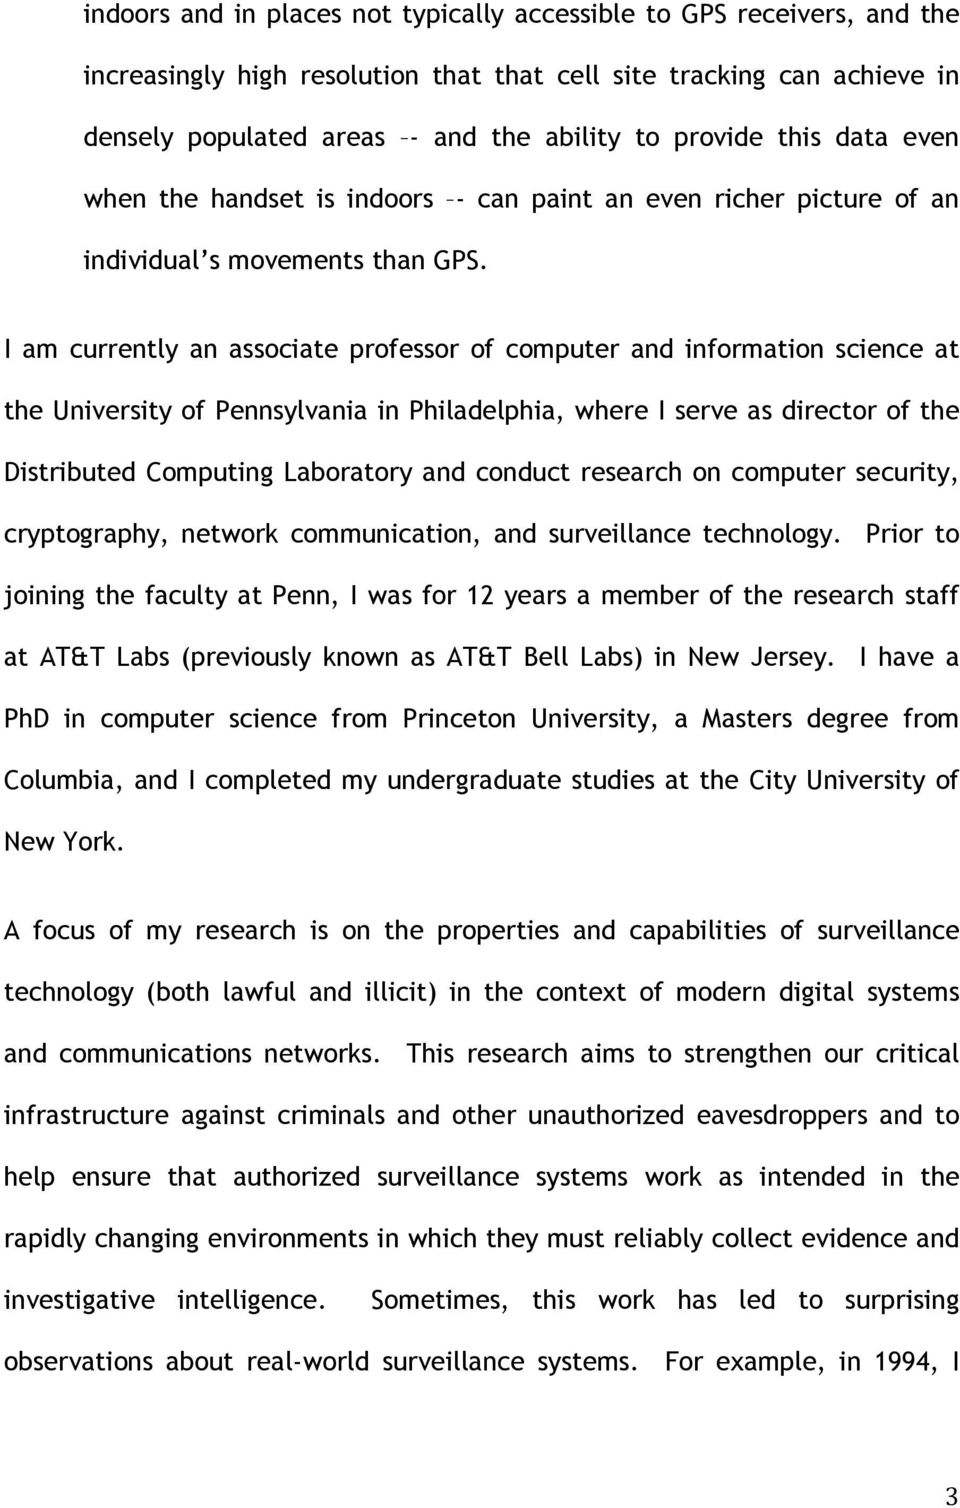 I am currently an associate professor of computer and information science at the University of Pennsylvania in Philadelphia, where I serve as director of the Distributed Computing Laboratory and